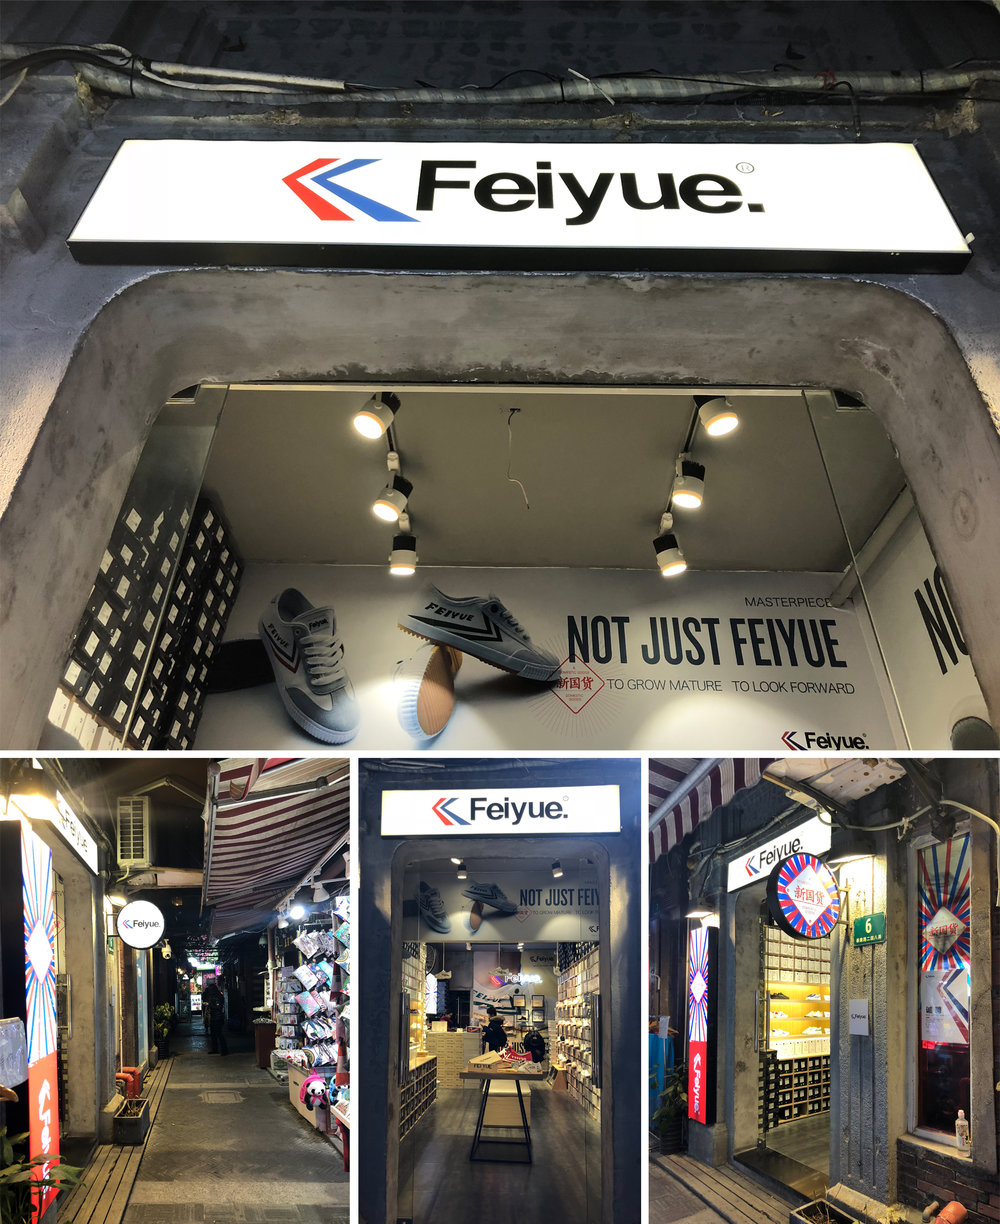 My favourite Feiyue store is in Tianzifang.